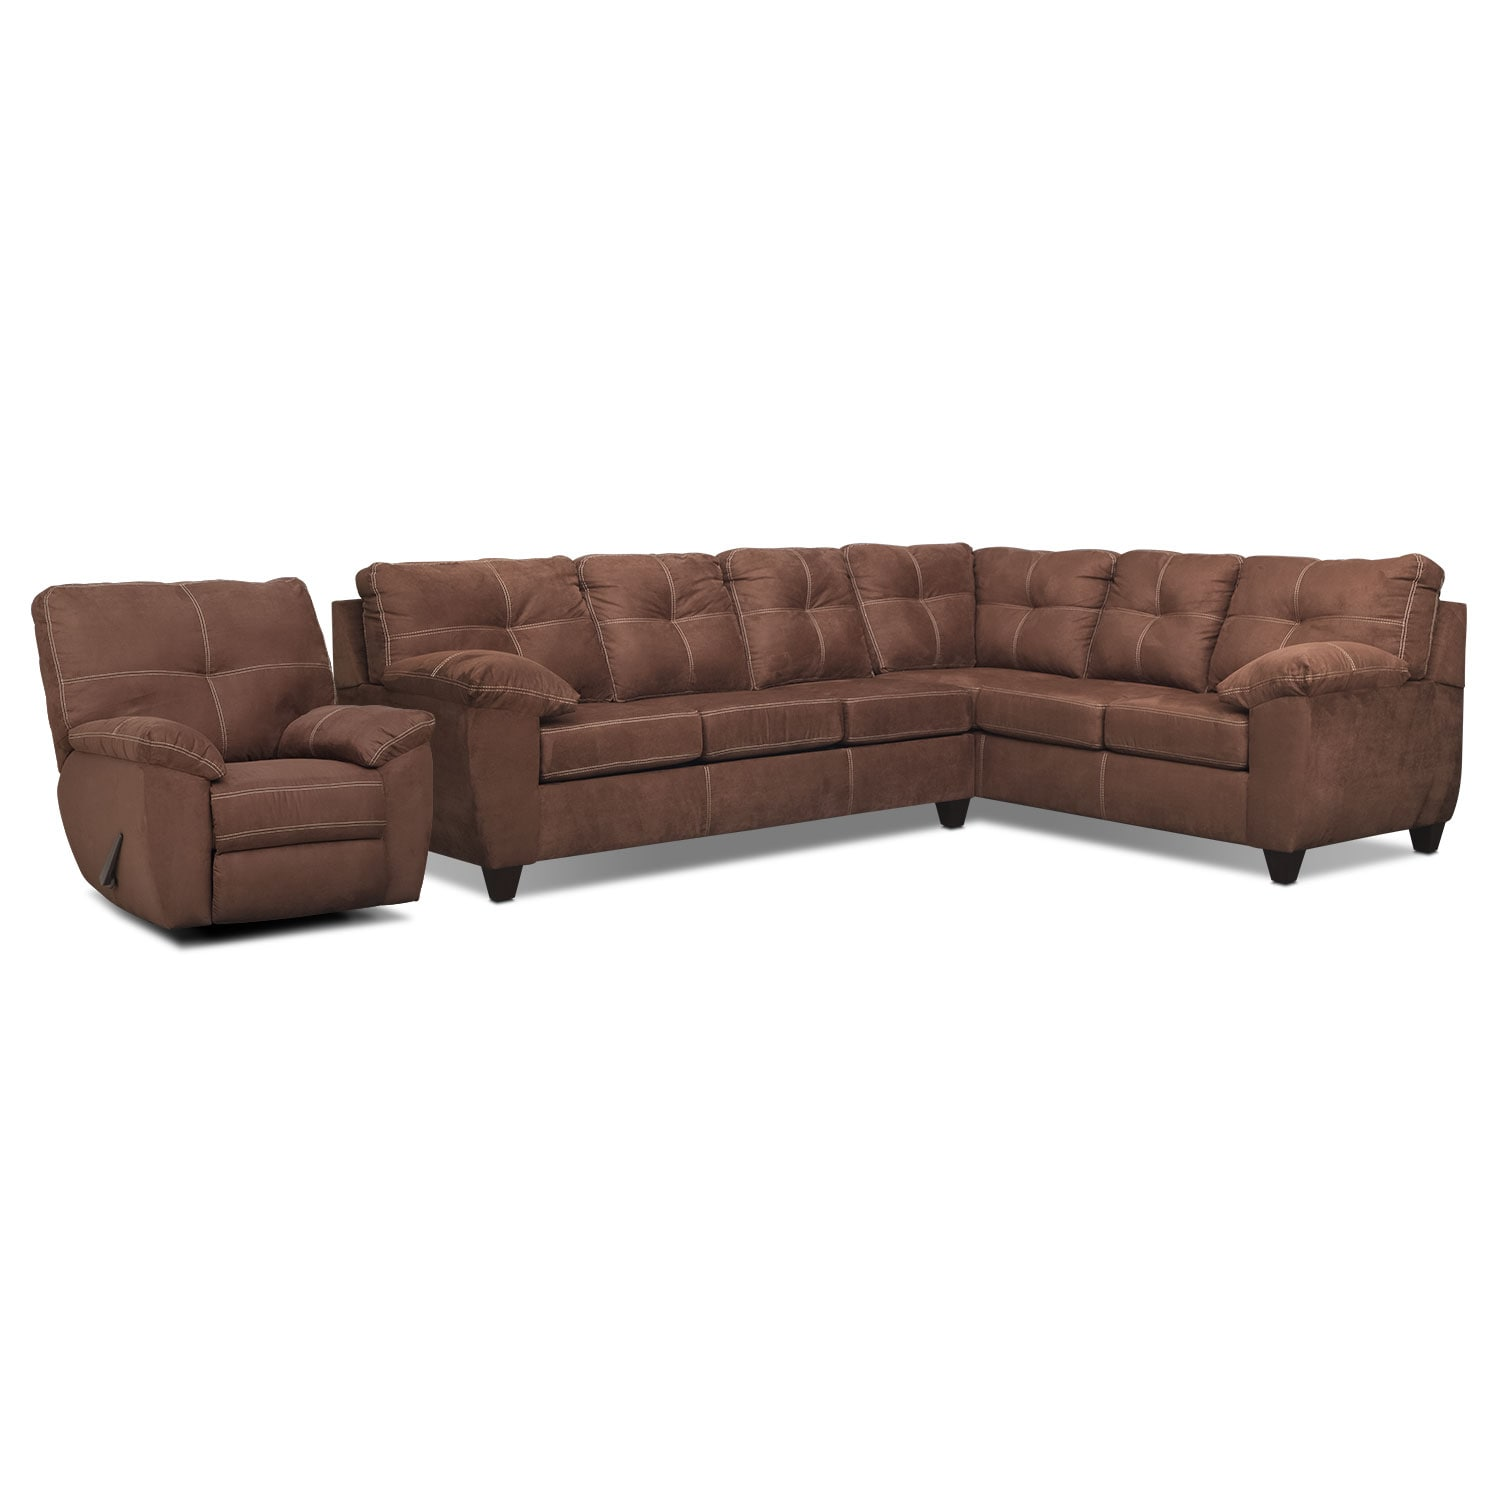 Rialto 2-Piece Sectional with Right-Facing Corner Sofa and Glider Recliner Set - Coffee